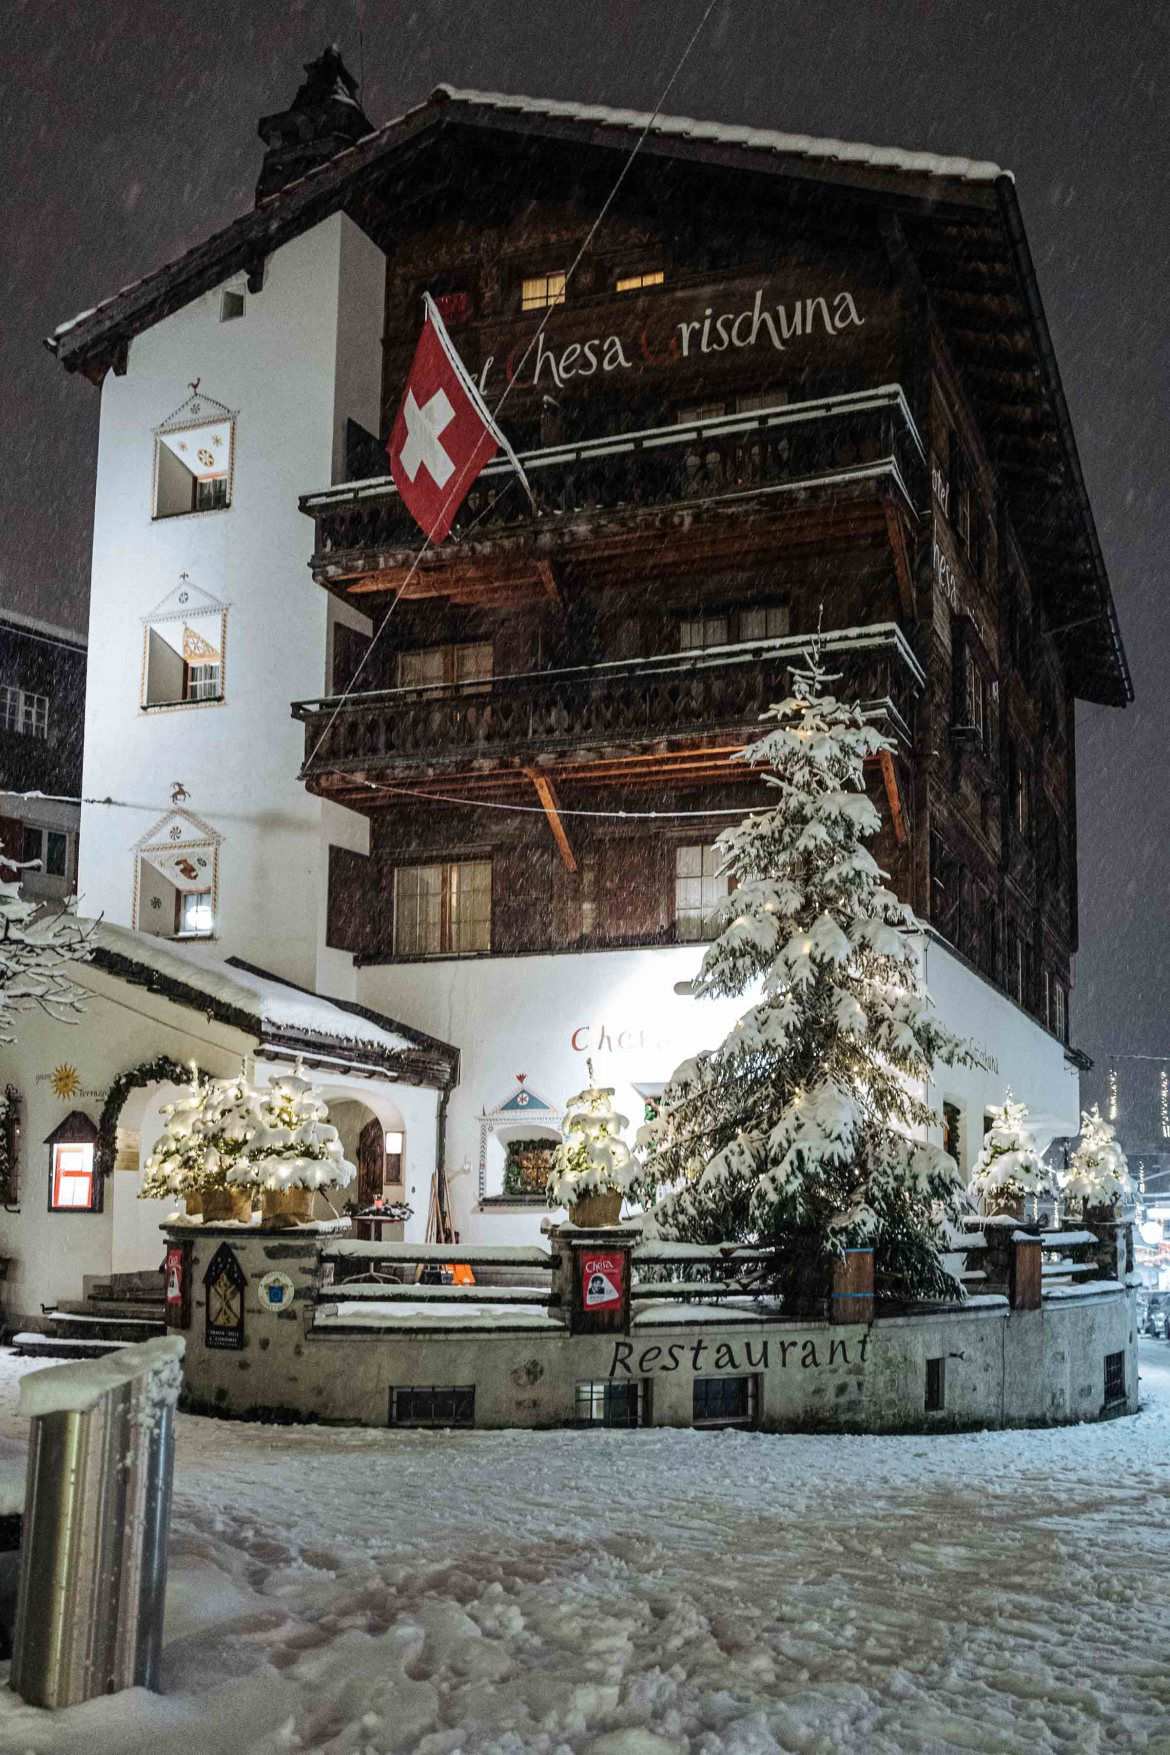 When planning your ski vacation to Klosters, stay at the Klosters Hotel chesa grischuna near Davos with historic architecture and alpine charm | The Taste Edit #travel #switzerland #swiss #snow #hotel